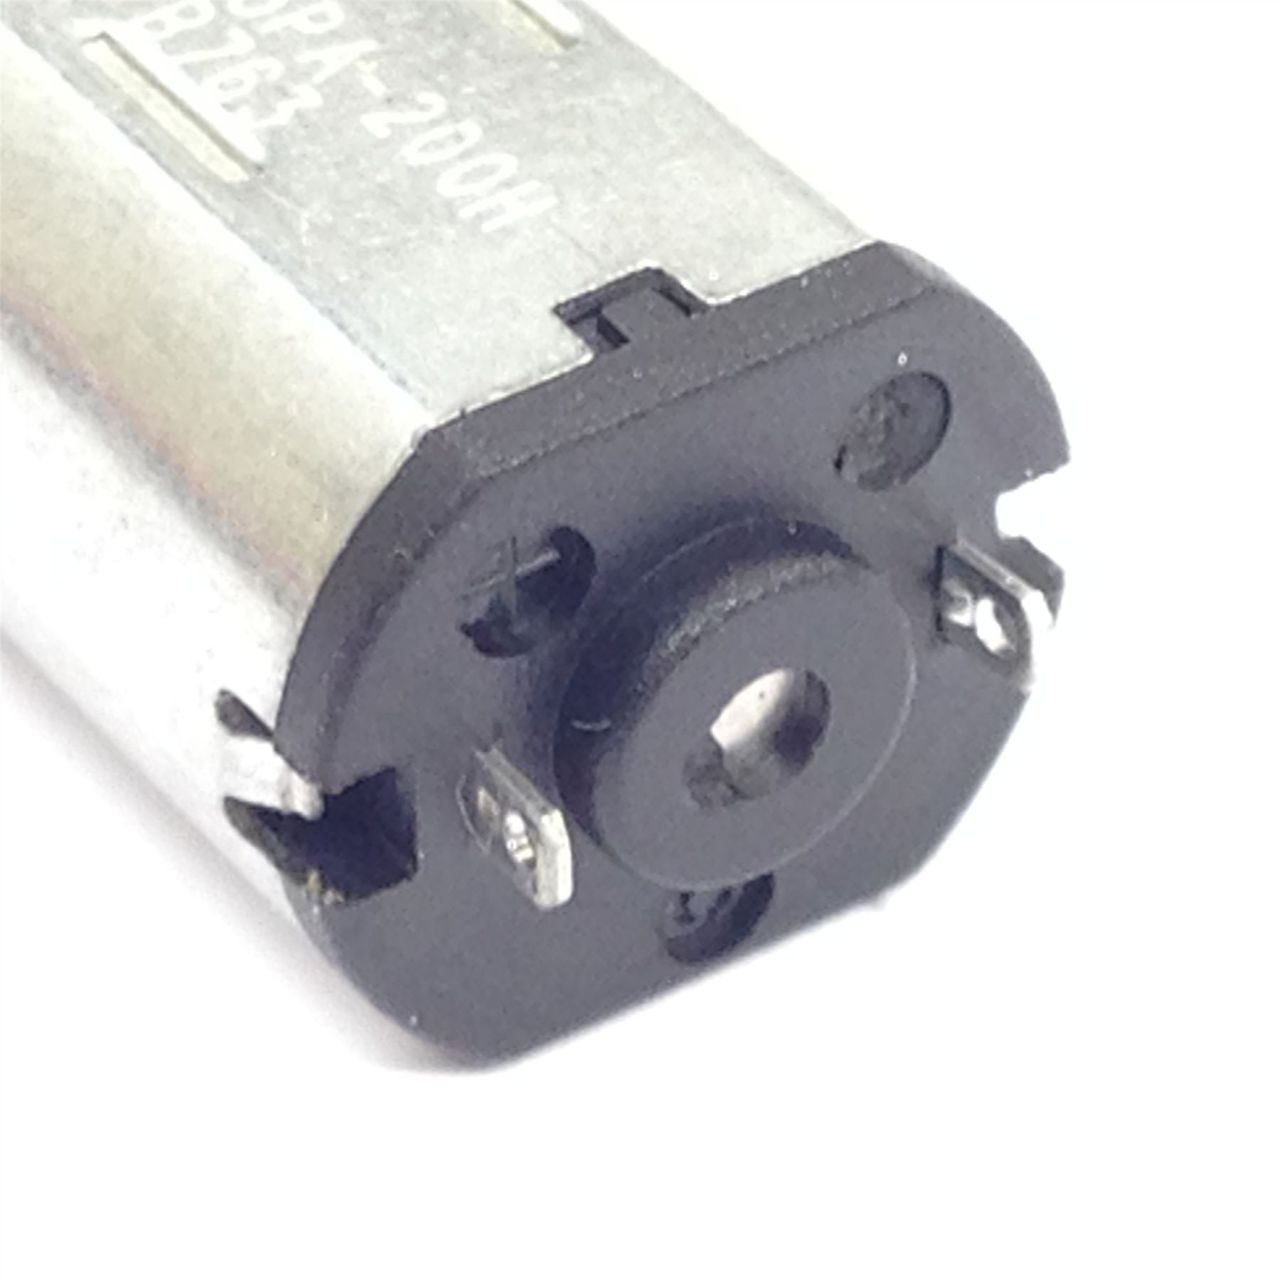 Rc4wd replacement motor gearbox for 1 10 warn Warn winch replacement motor